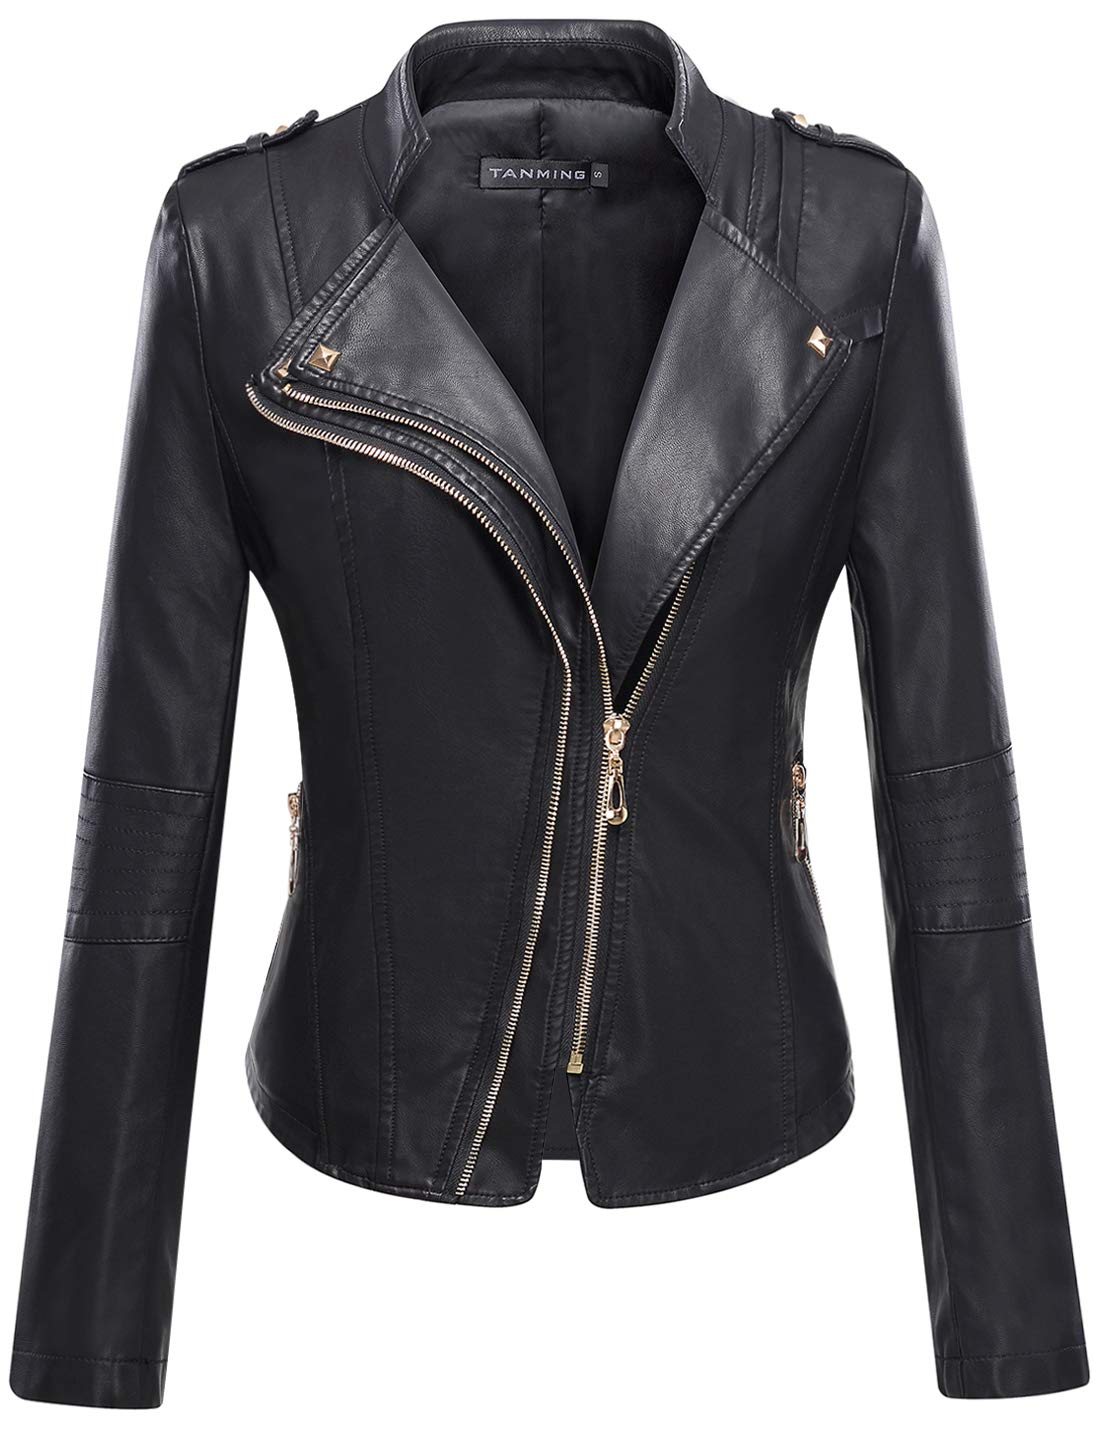 Tanming Women's Slim Zipper Color Faux Leather Jacket Red (X-Large, Black)